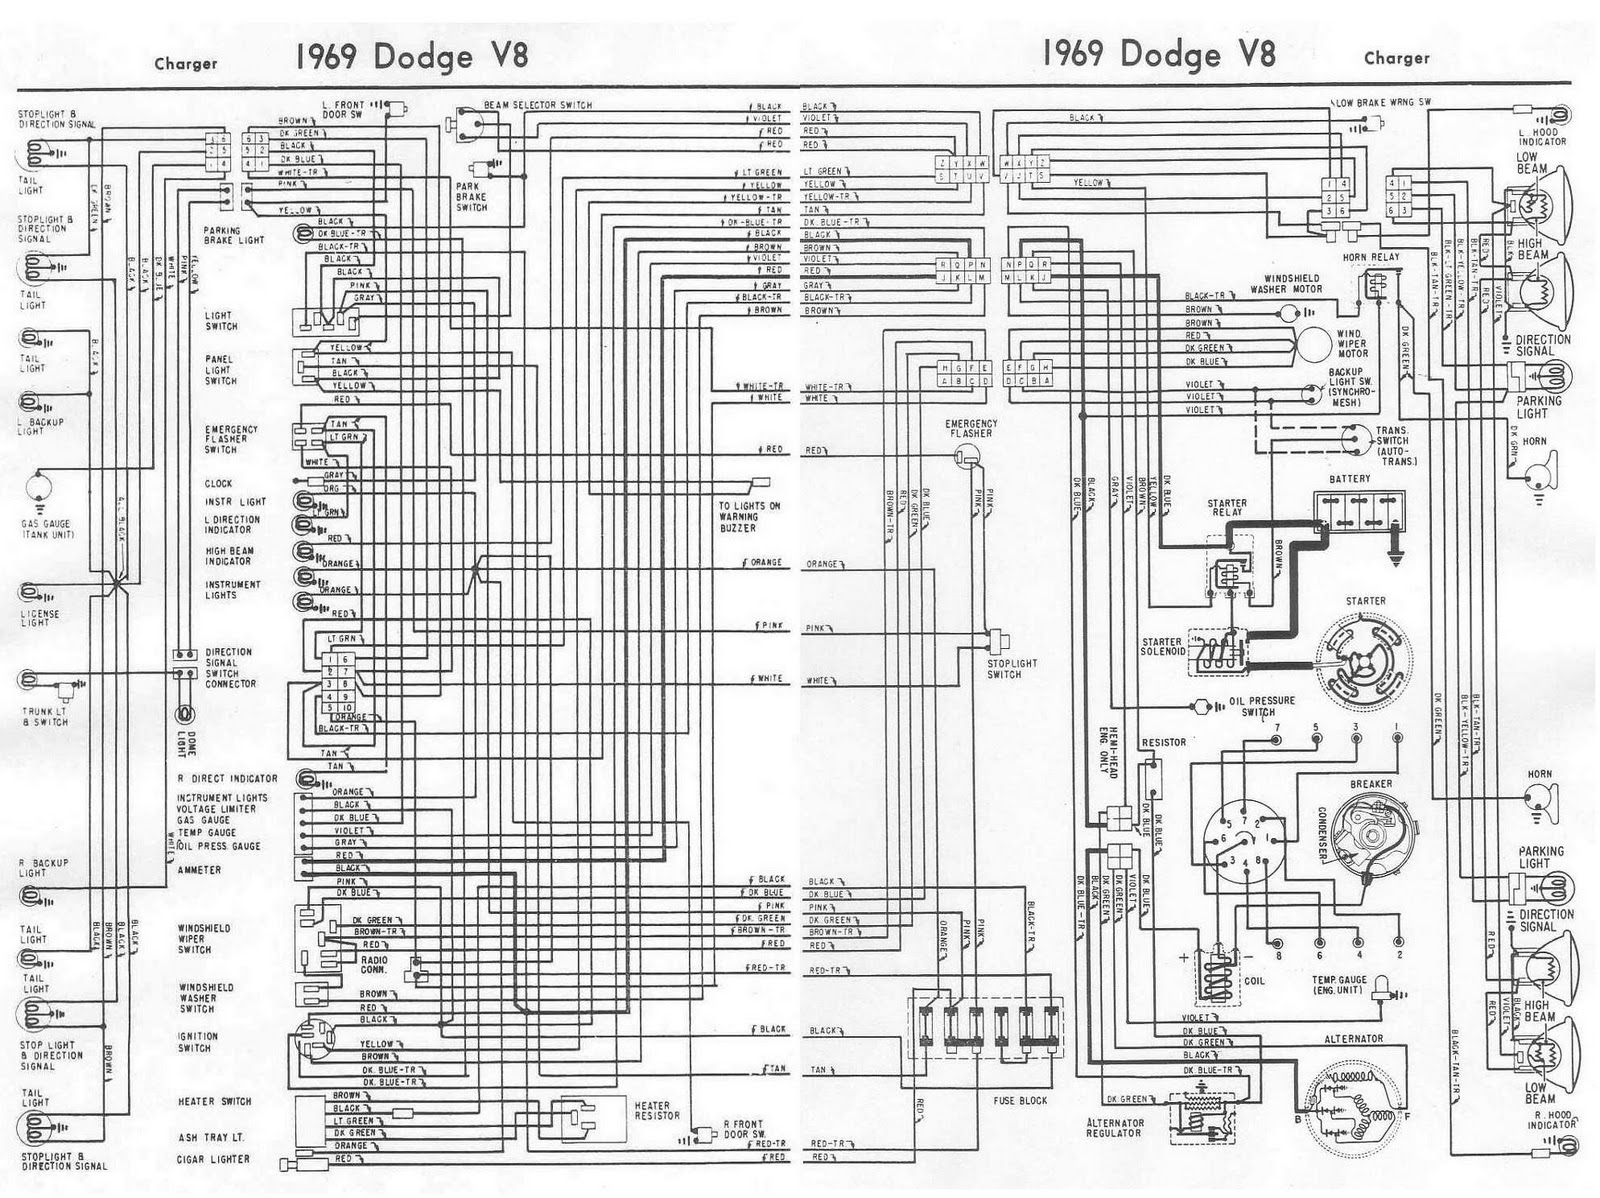 Dodge    Charger 1969 V8 Complete Electrical    Wiring       Diagram      All about    Wiring       Diagrams